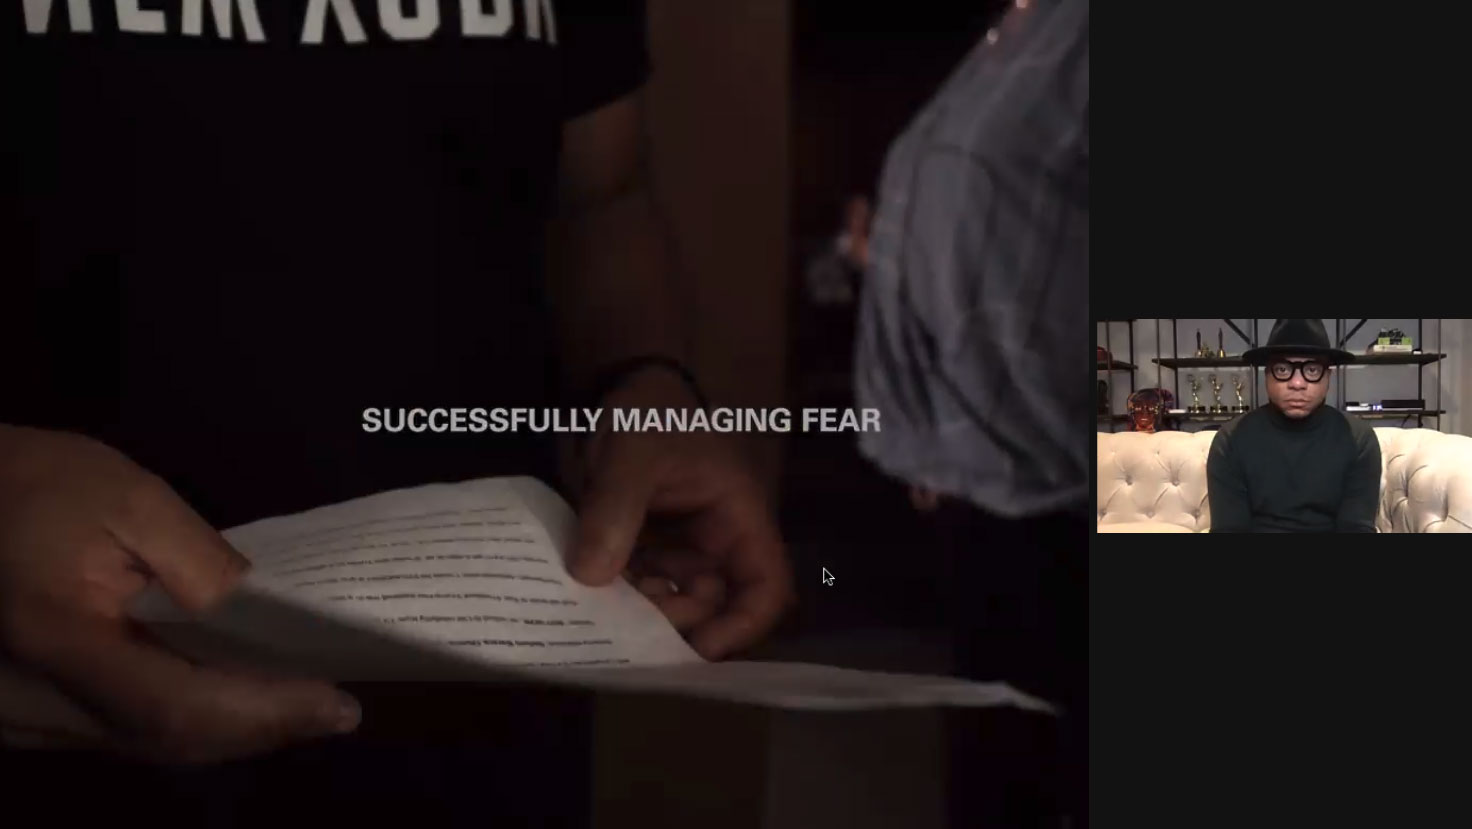 Douglas Davis successfully managing fear